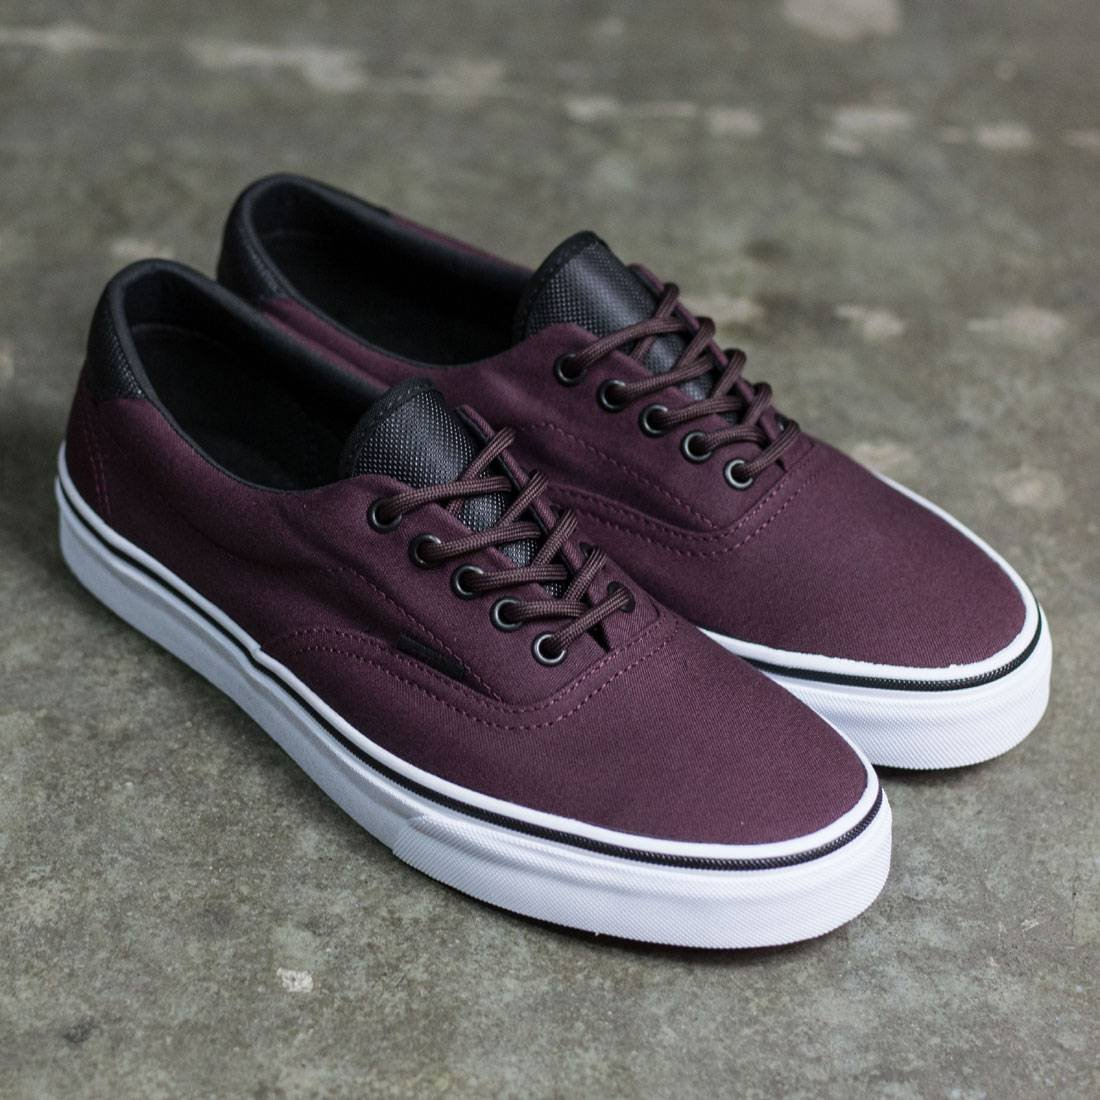 0b7e09d149e8 Galleon - Vans Era 59 Canvas Military Fashion Sneakers